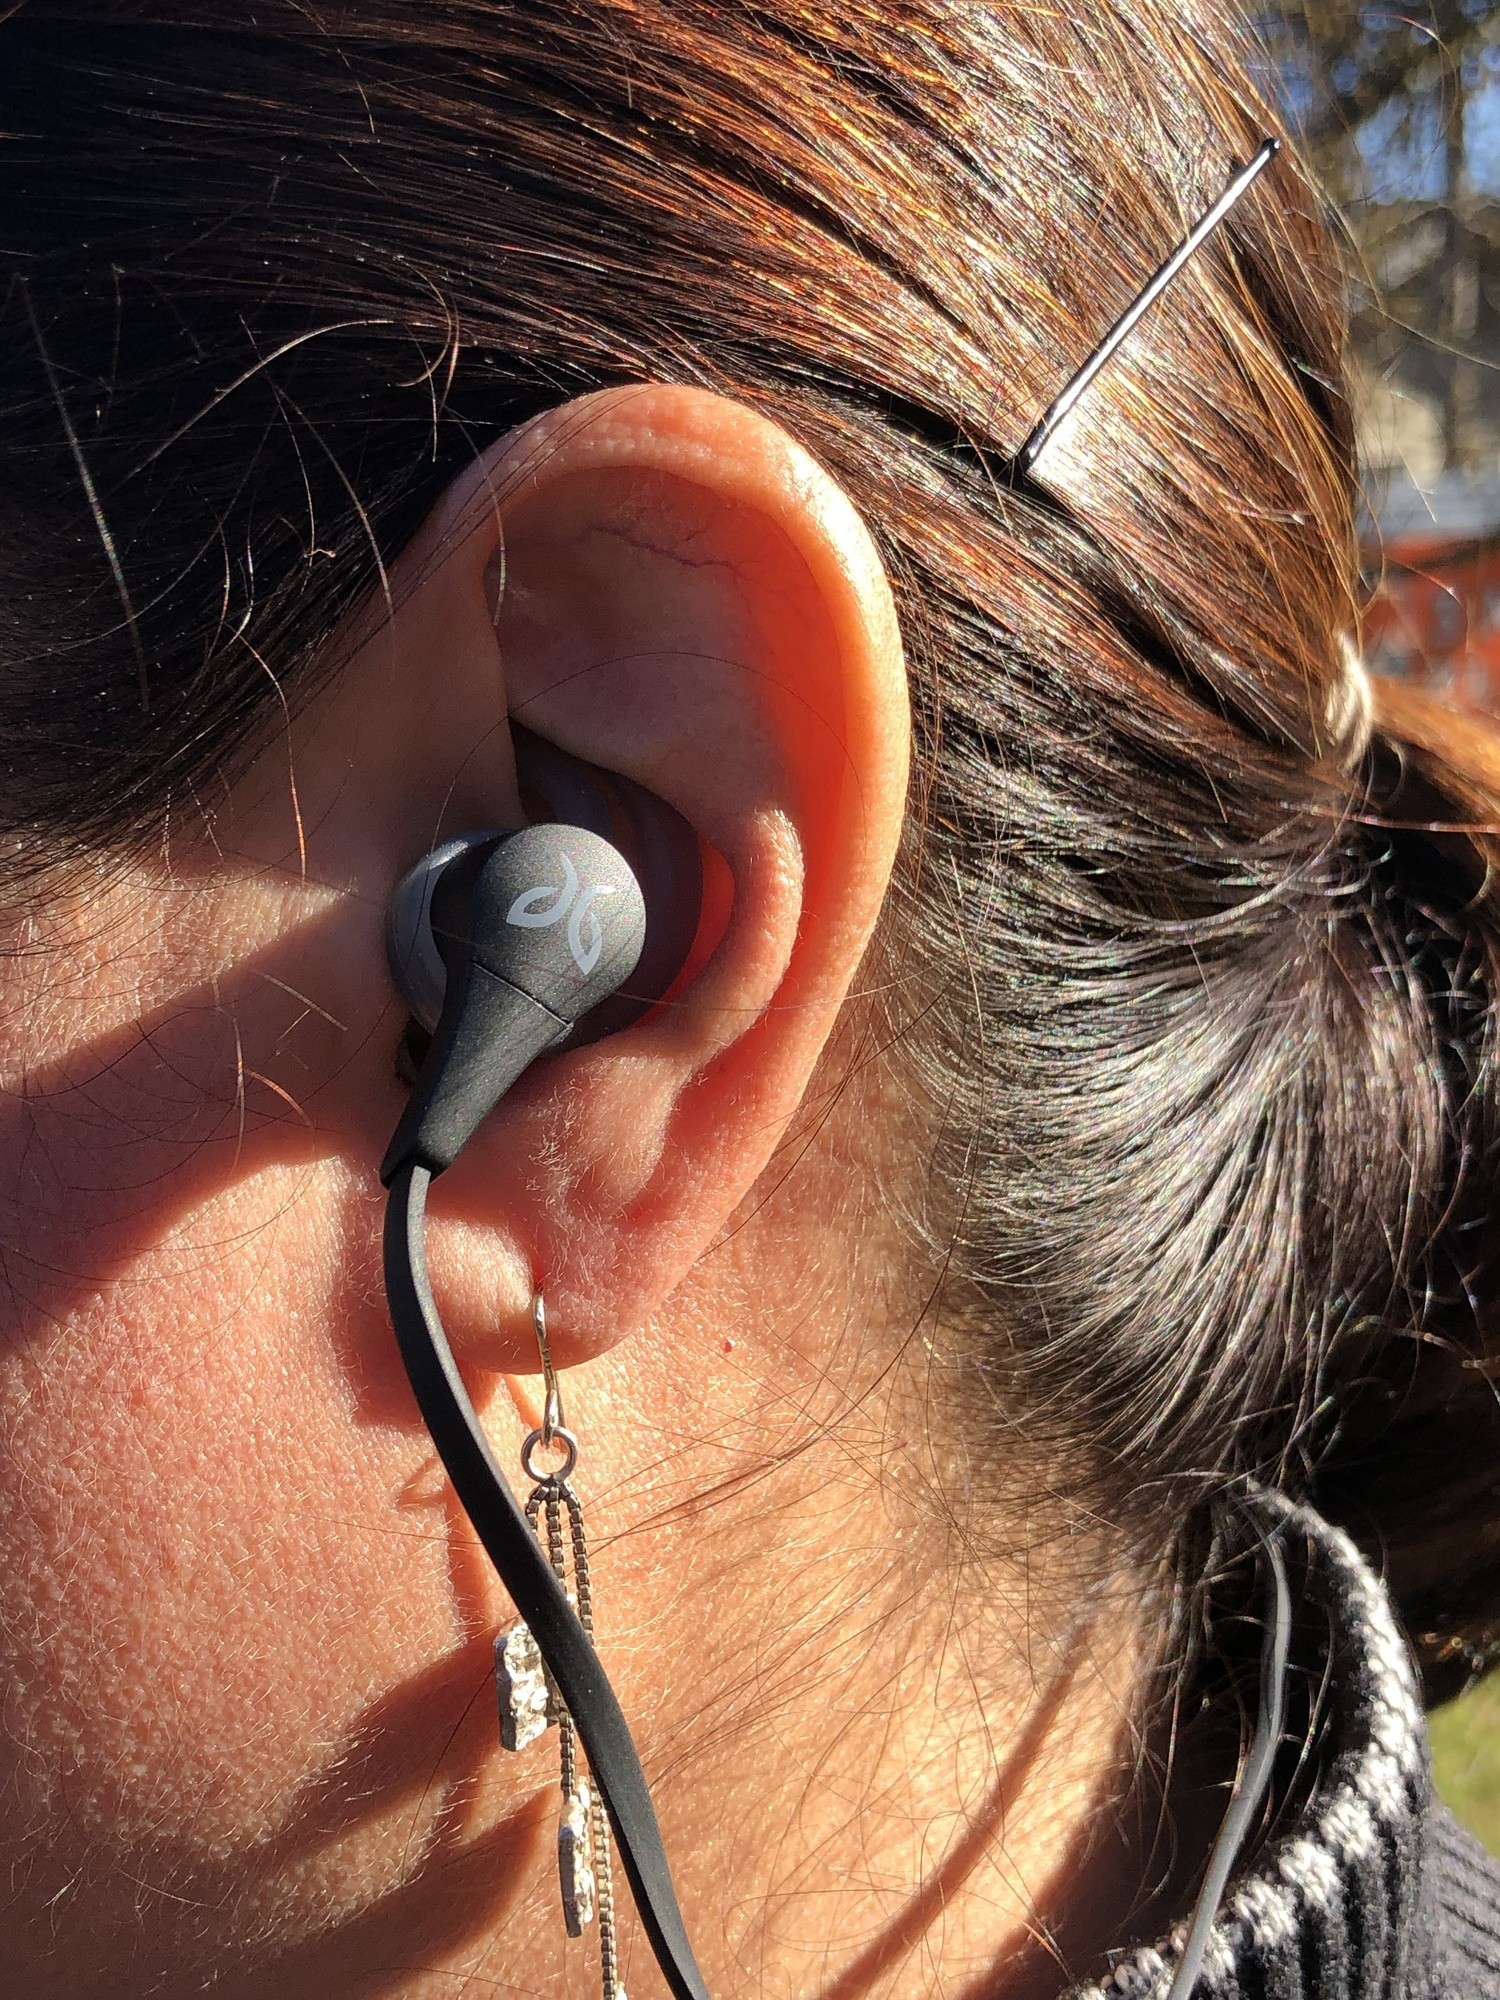 The Jaybird X4 fits snugly in the ear.   Photo by Shayne Combs.